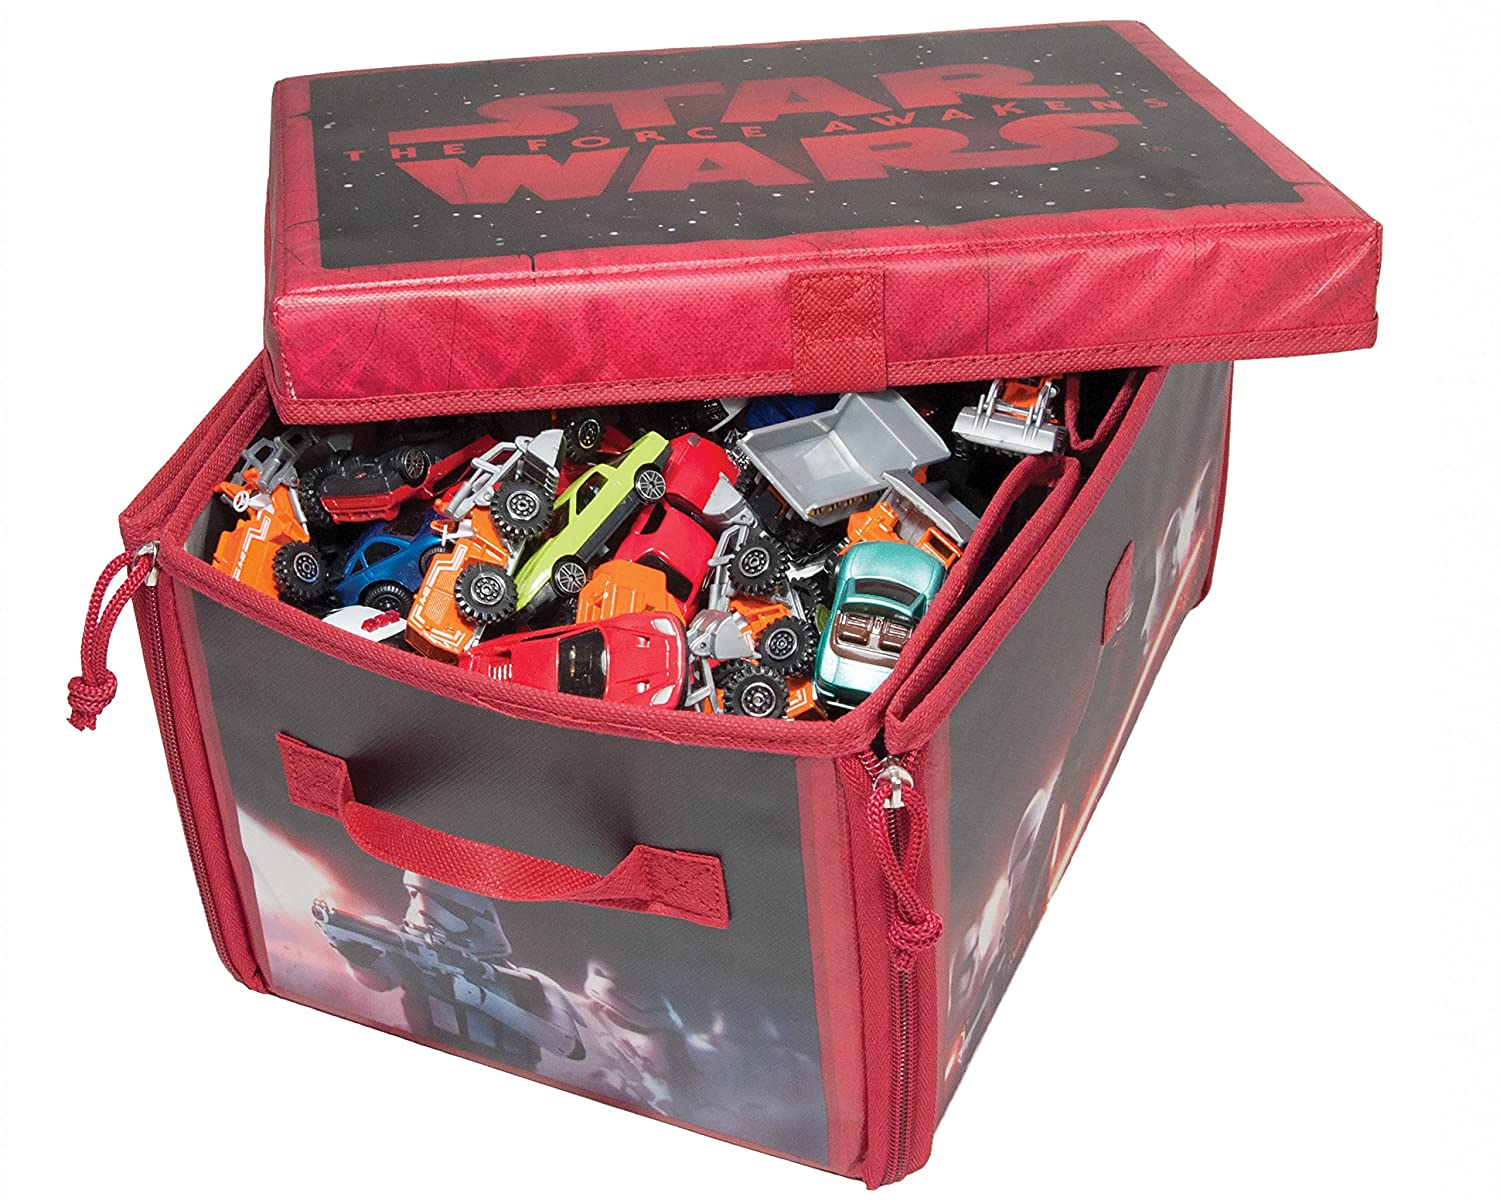 Neat-Oh! Star Wars Transforming Toybox Kroeger Inc. Canada A2125XX